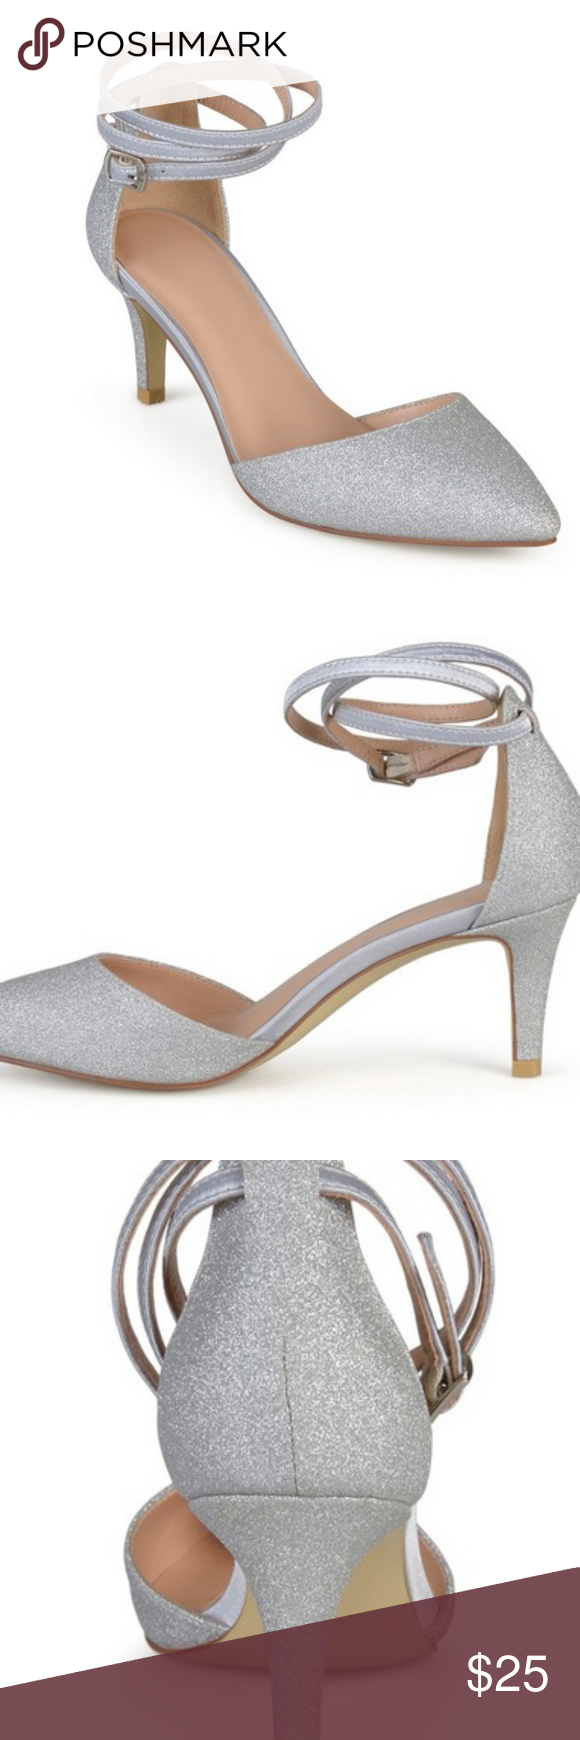 de3c42765c Journee Collection d'Orsay Luela Glitter Pumps Go for the glam with these  Women's Journee